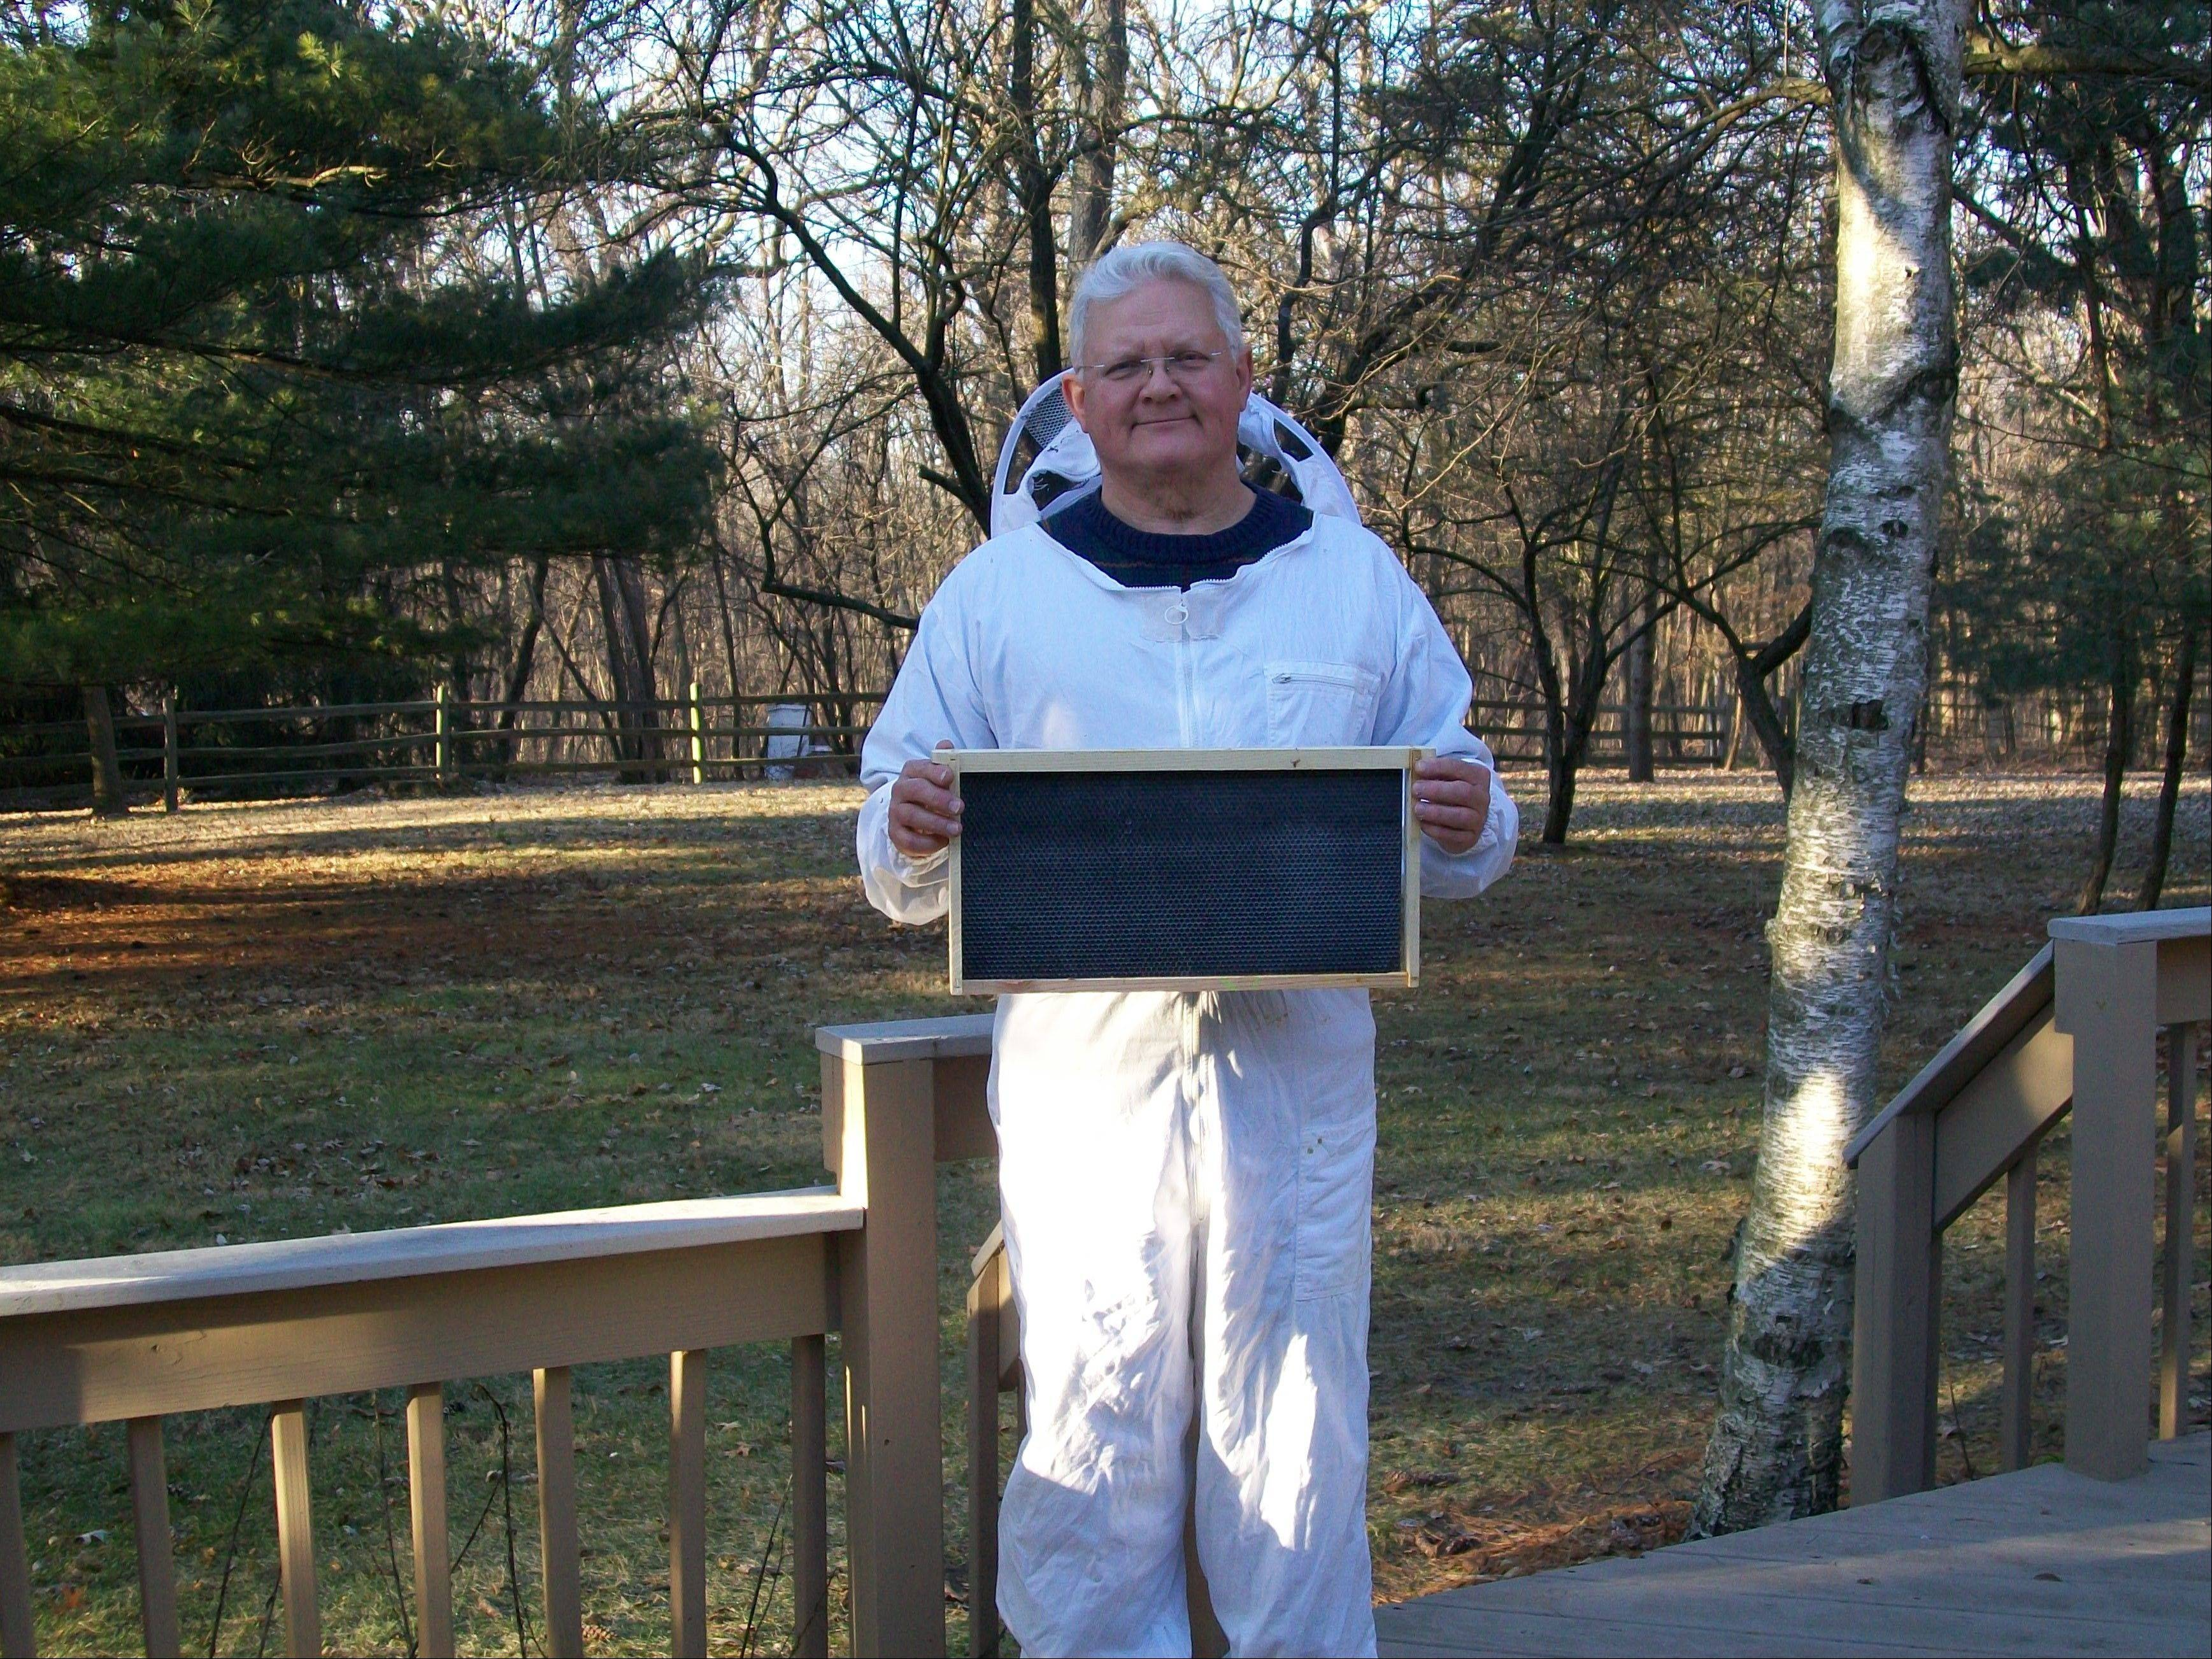 Beekeeper Hillard Bryant displays a frame that's inserted into a box where bees produce and store honey -- all in Bryant's backyard.